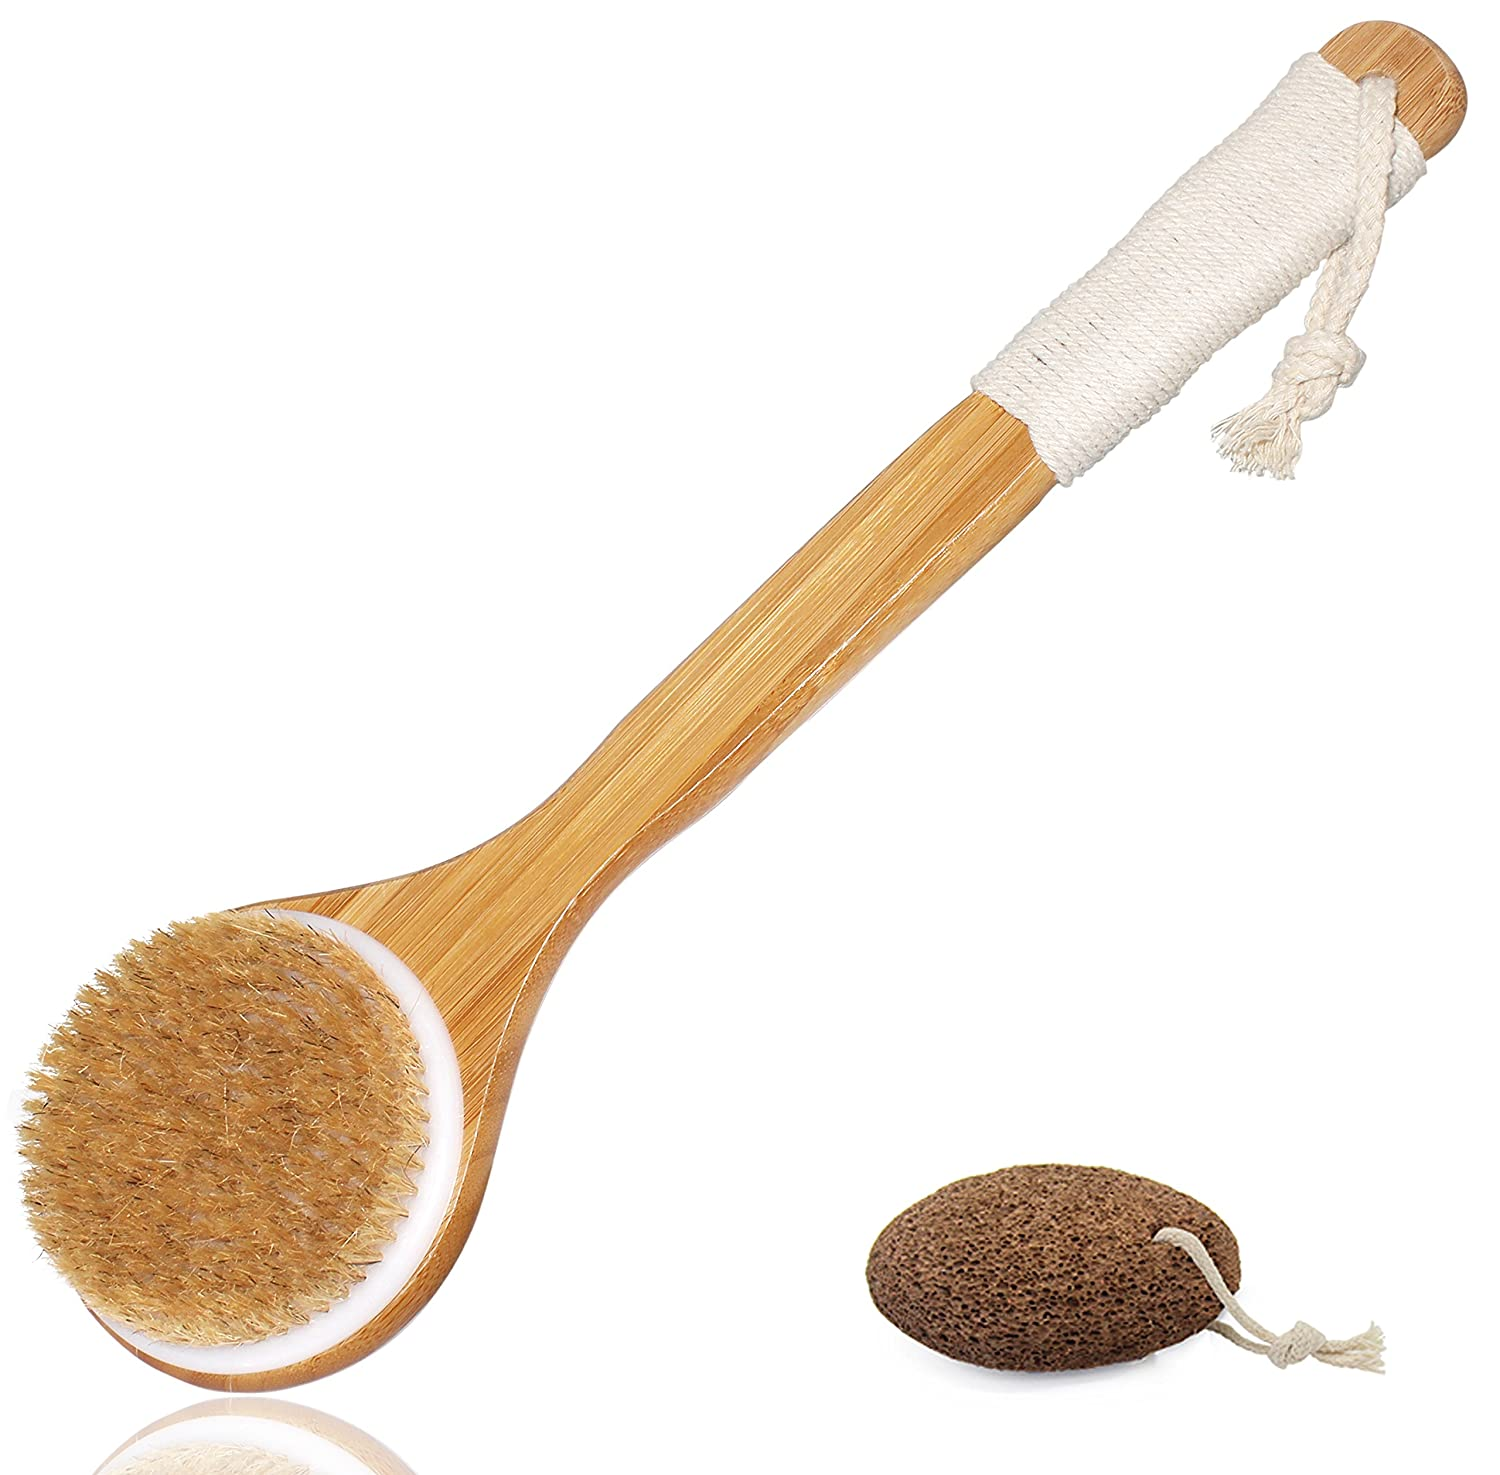 Esup Body Brush Dry Brush Back Scrubber Bath Brush with Long Bamboo Handle for Cellulite and Exfoliating